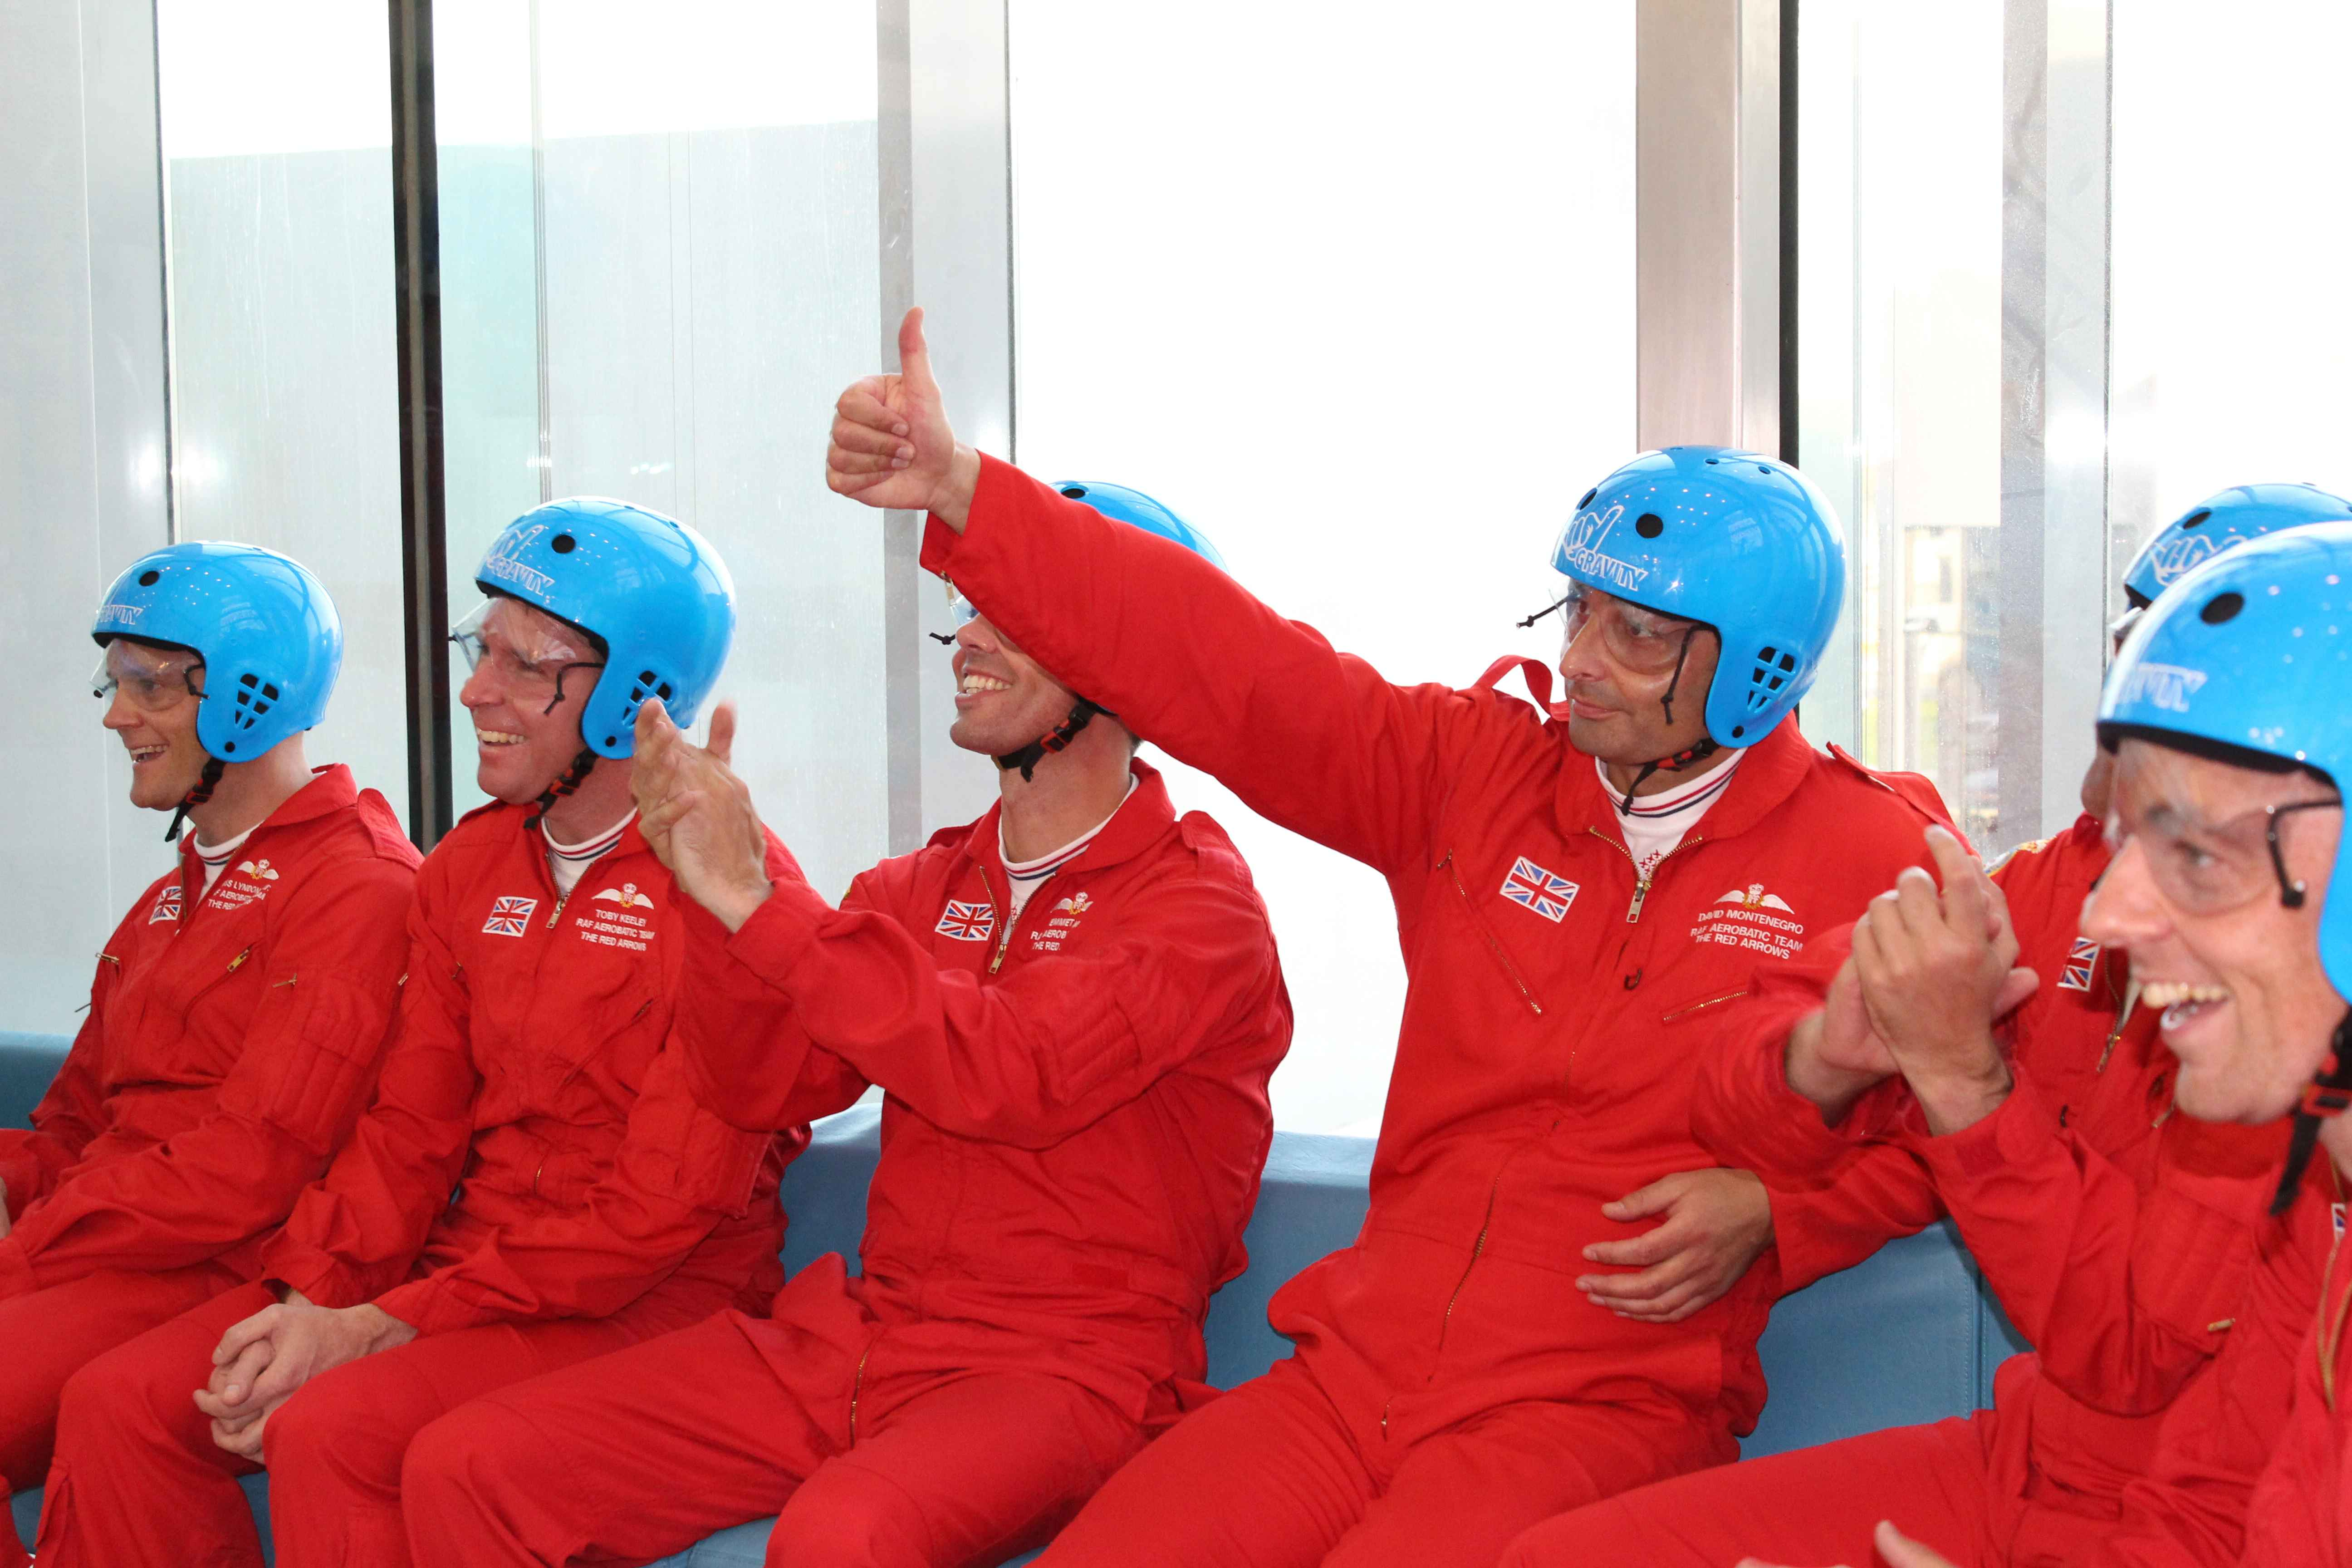 Trying a new challenge together is a perfect experience for corporate events, team-building or a special occasion